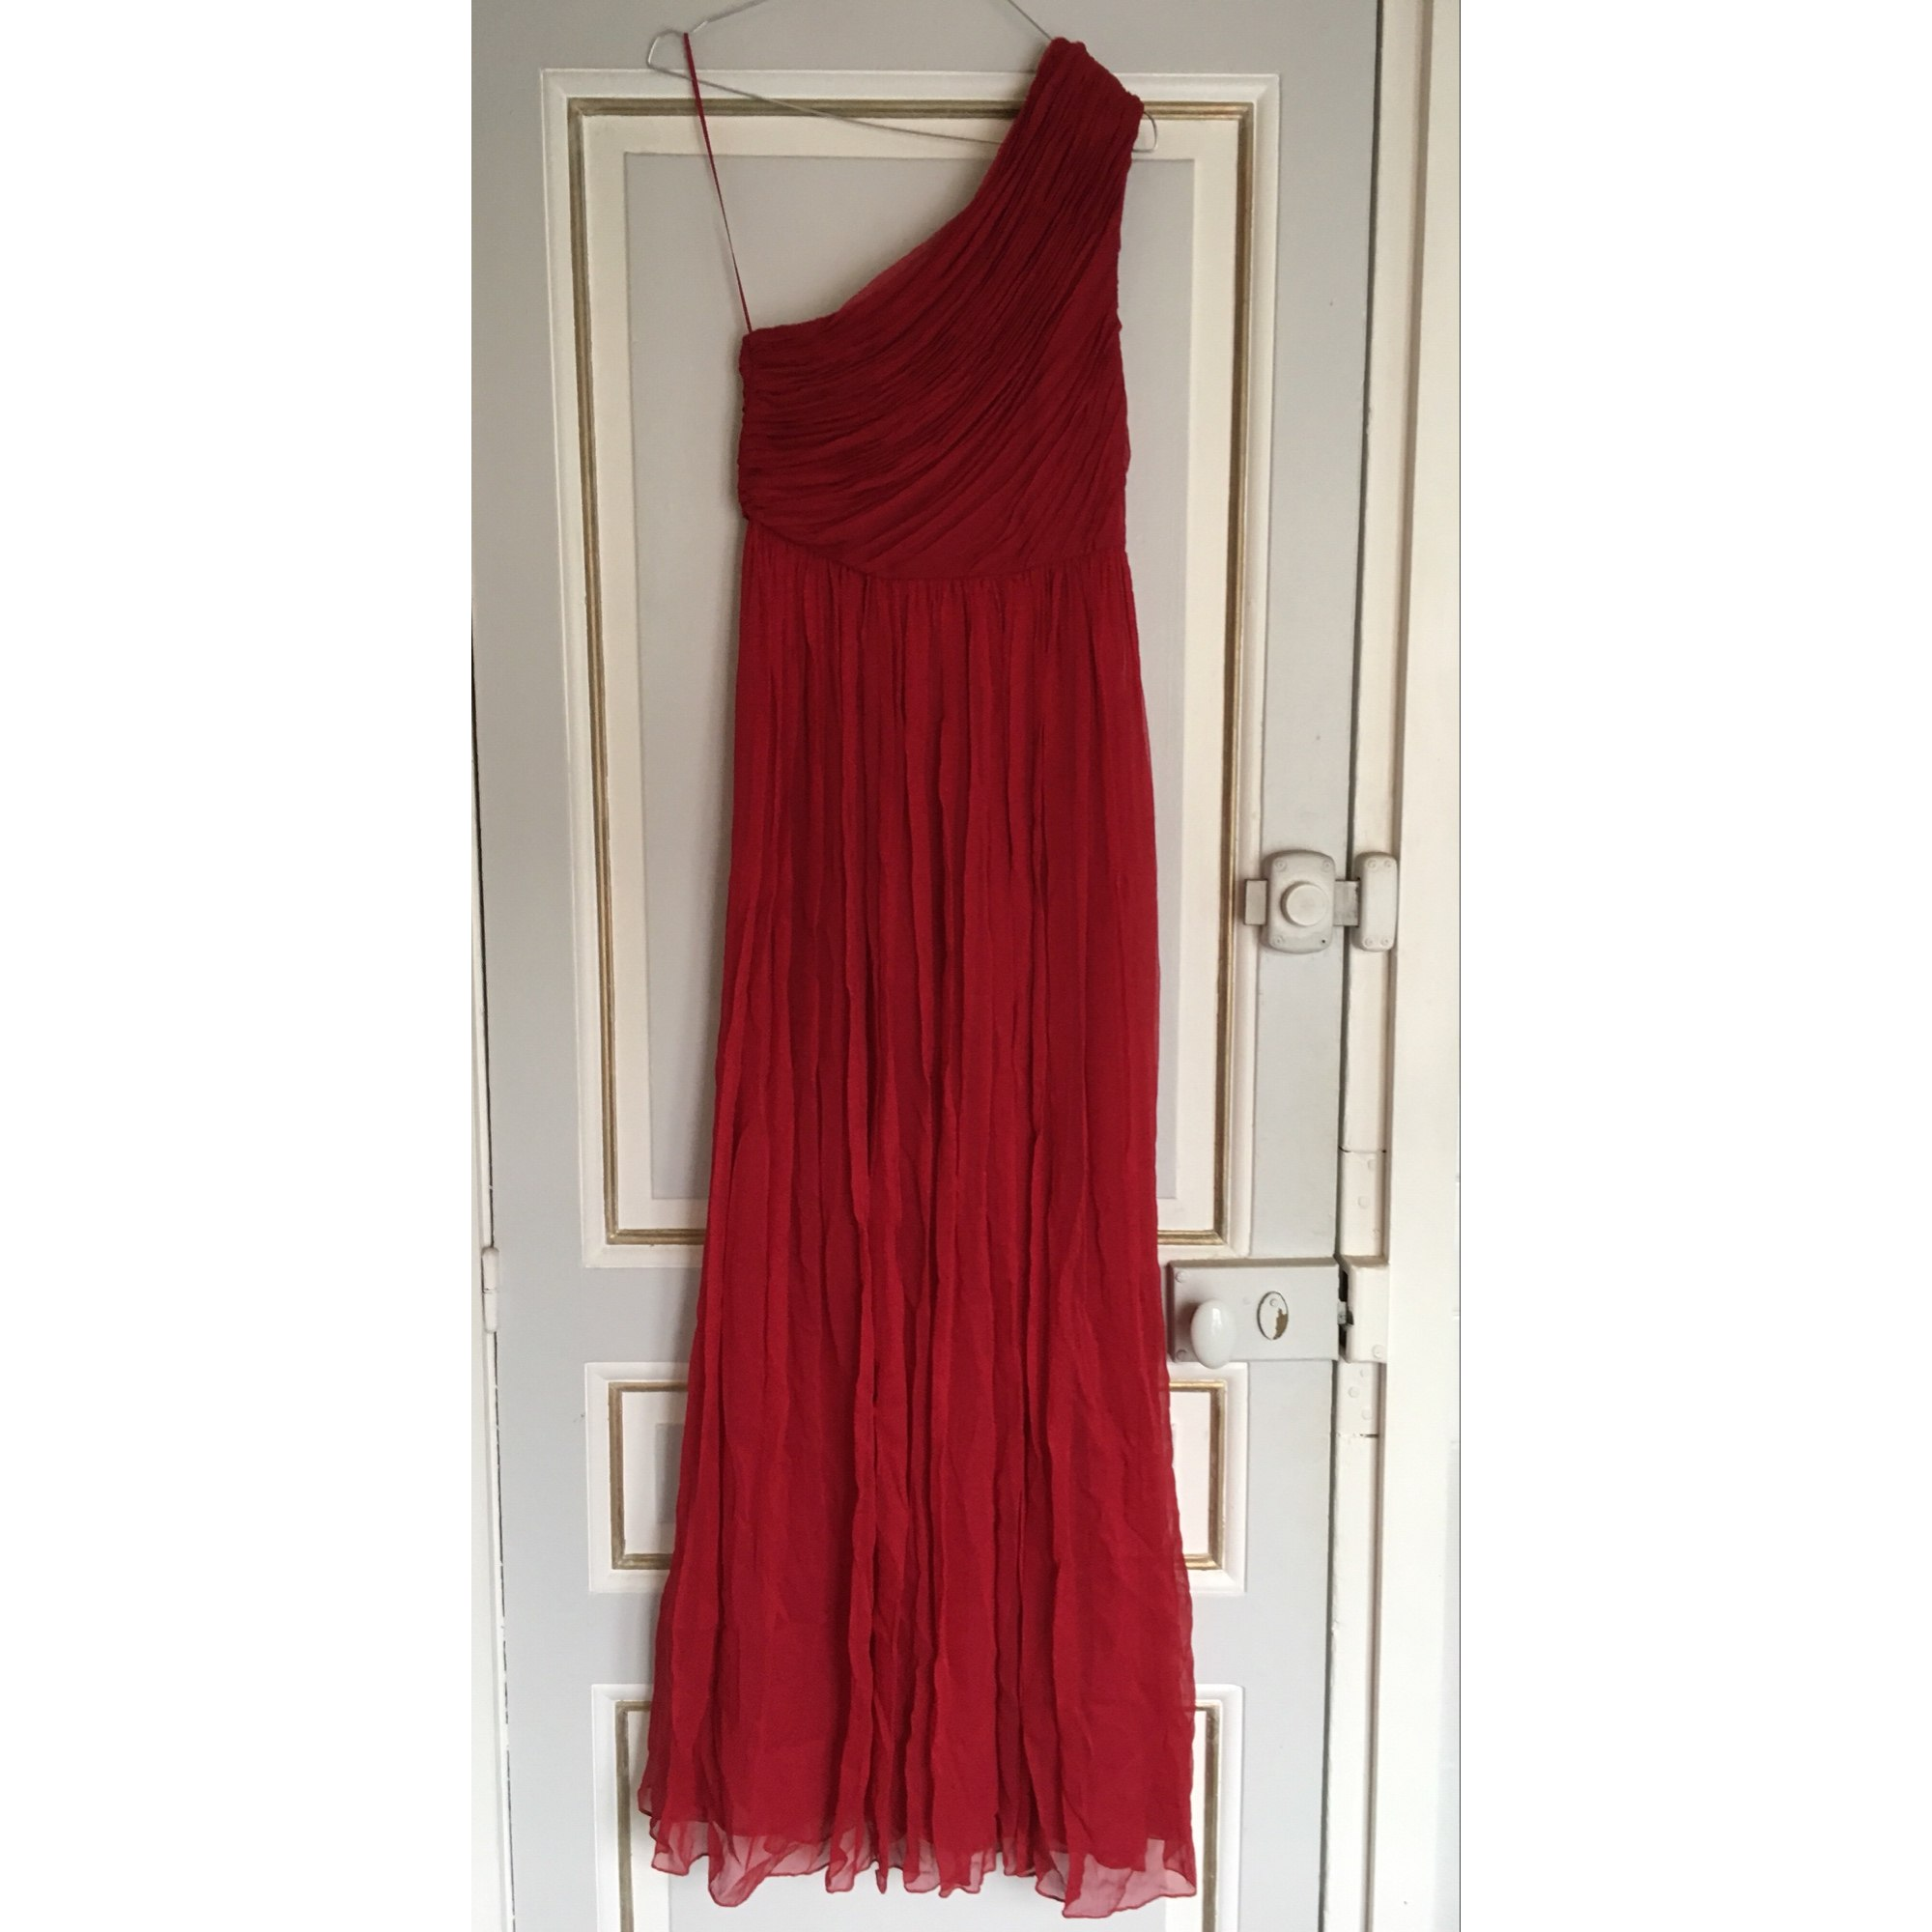 Robe longue MANGO 34 (XS, T0) rouge - 6753939 feb3233b66a0